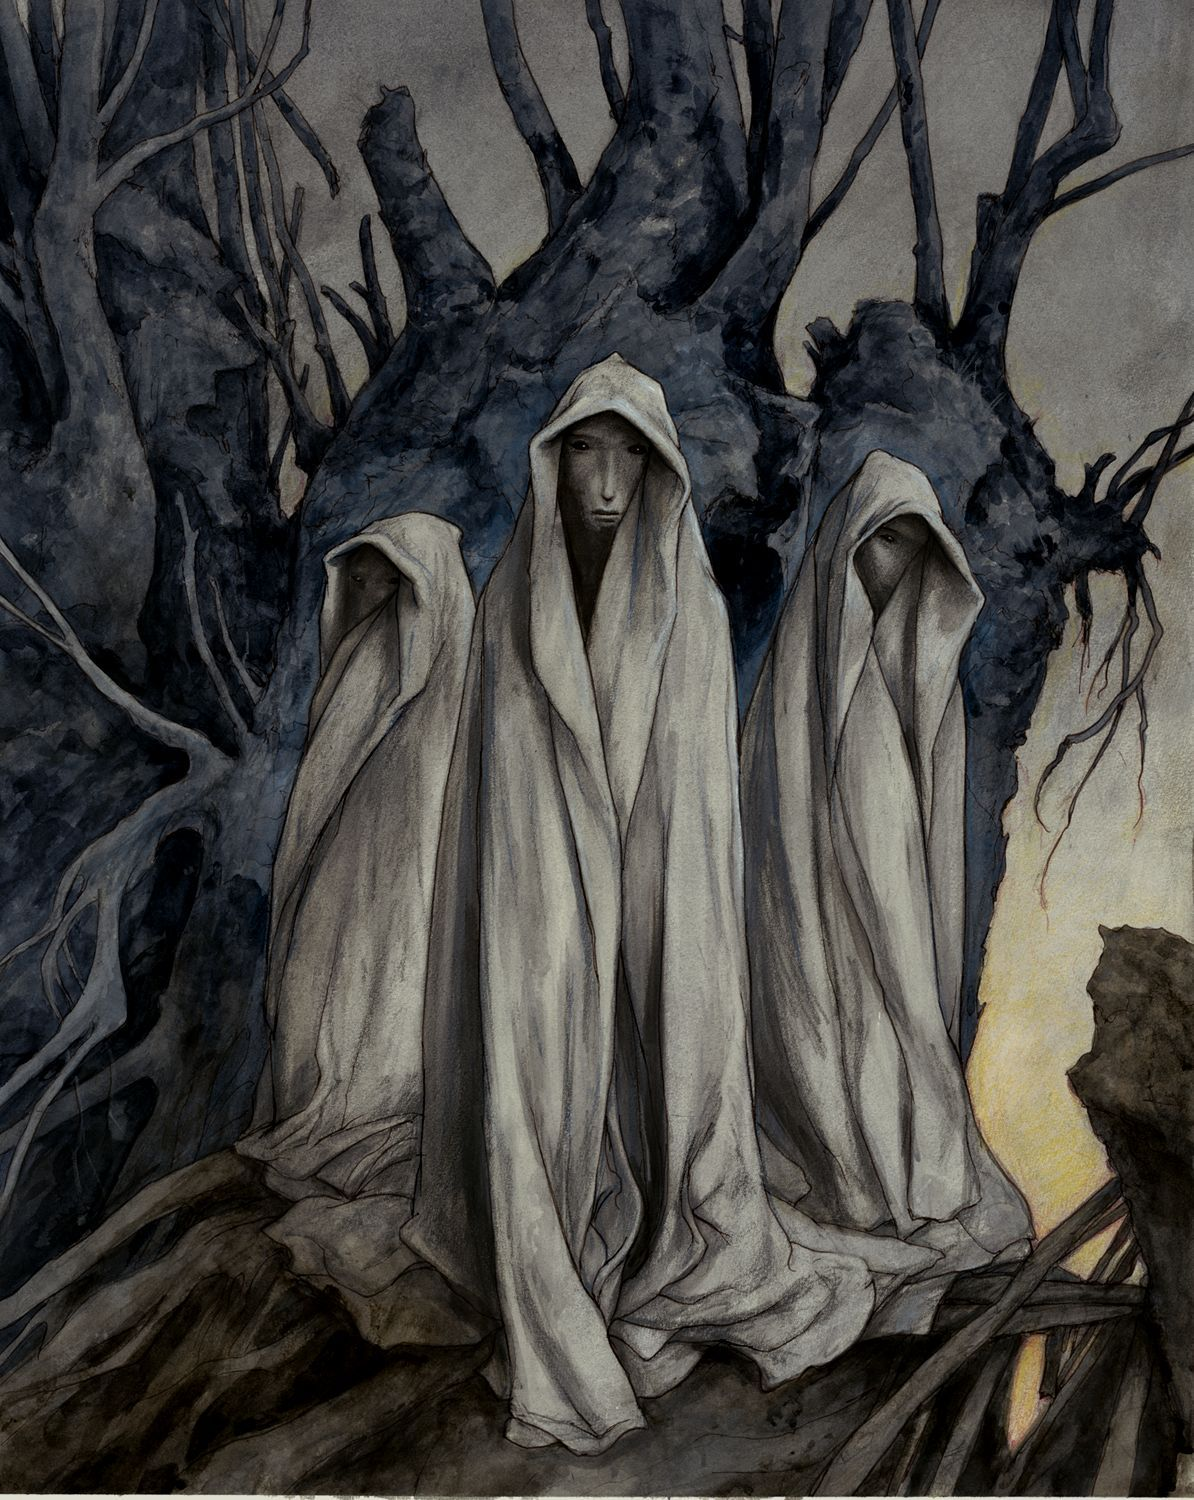 Brian Froud----brings to mind the three weird sisters of Macbeth